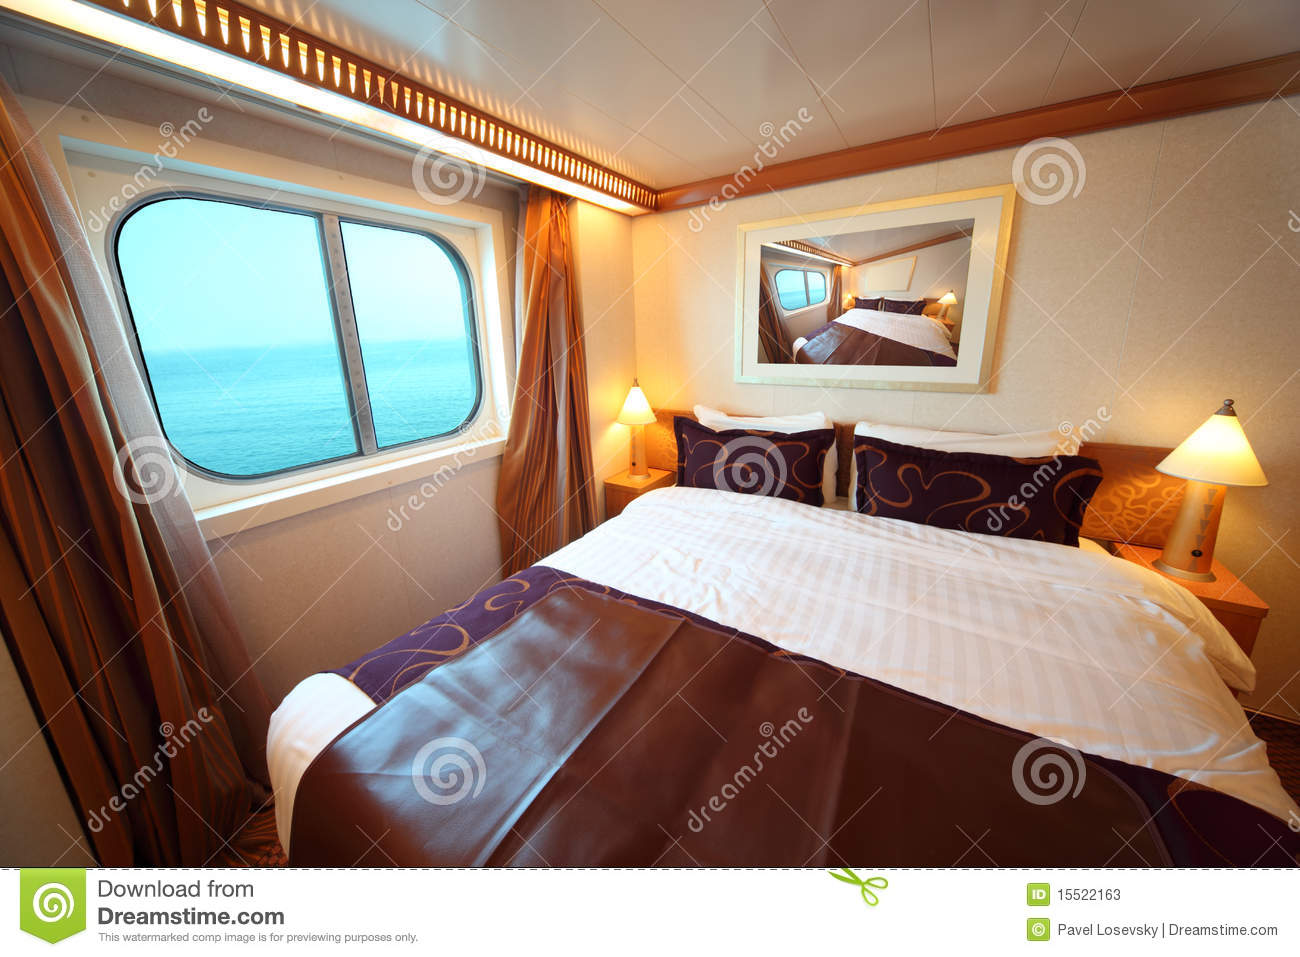 Ship Cabin With Bed And Window With View On Sea Stock